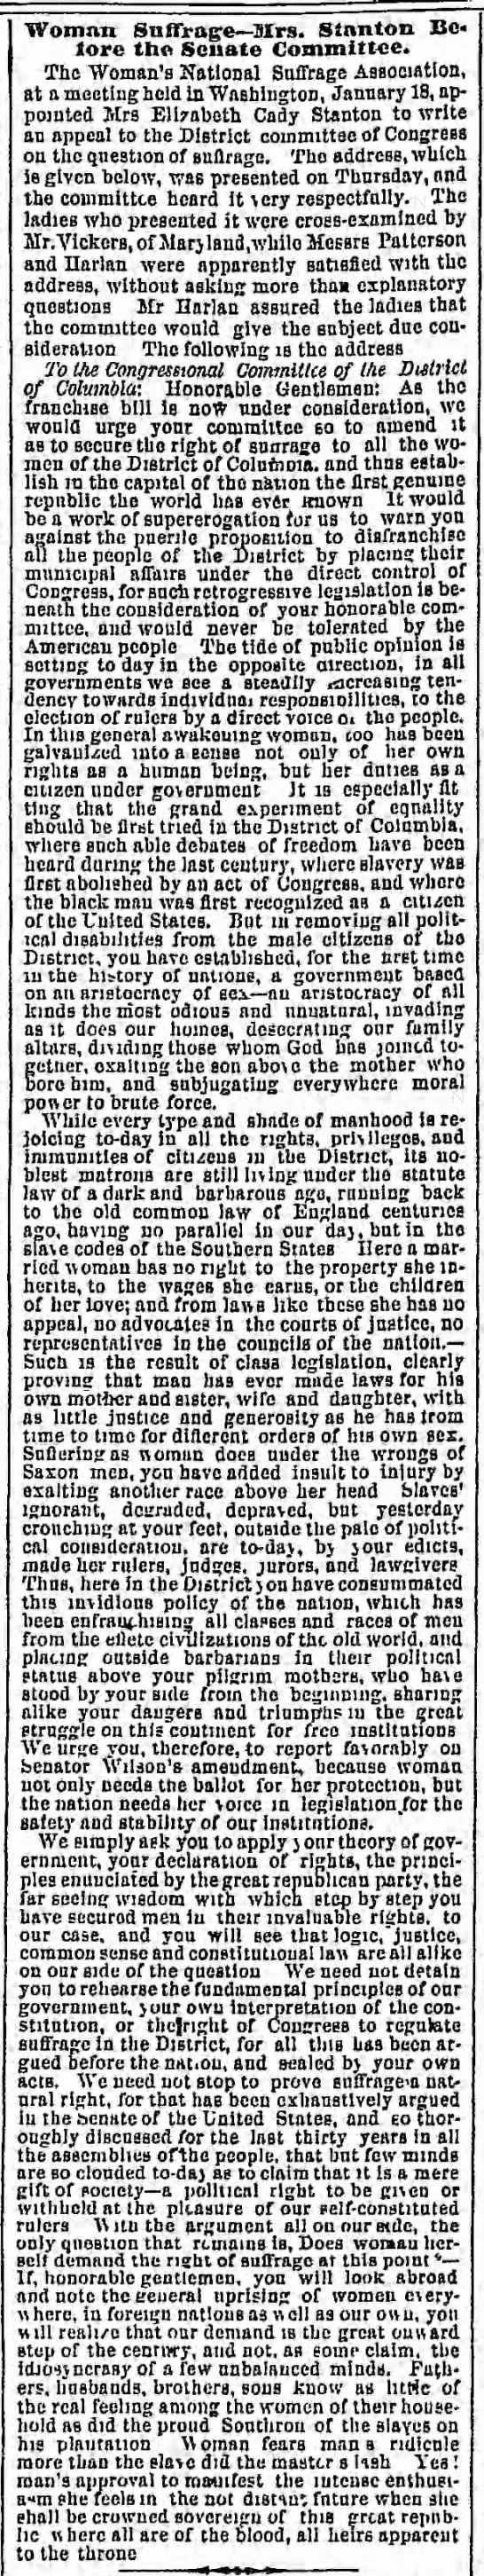 Elizabeth Cady Stanton addresses the Congressional Committee of the District of Columbia in 1869. - Woman Suffrage Sirs. Stanton Be tore the Senate...